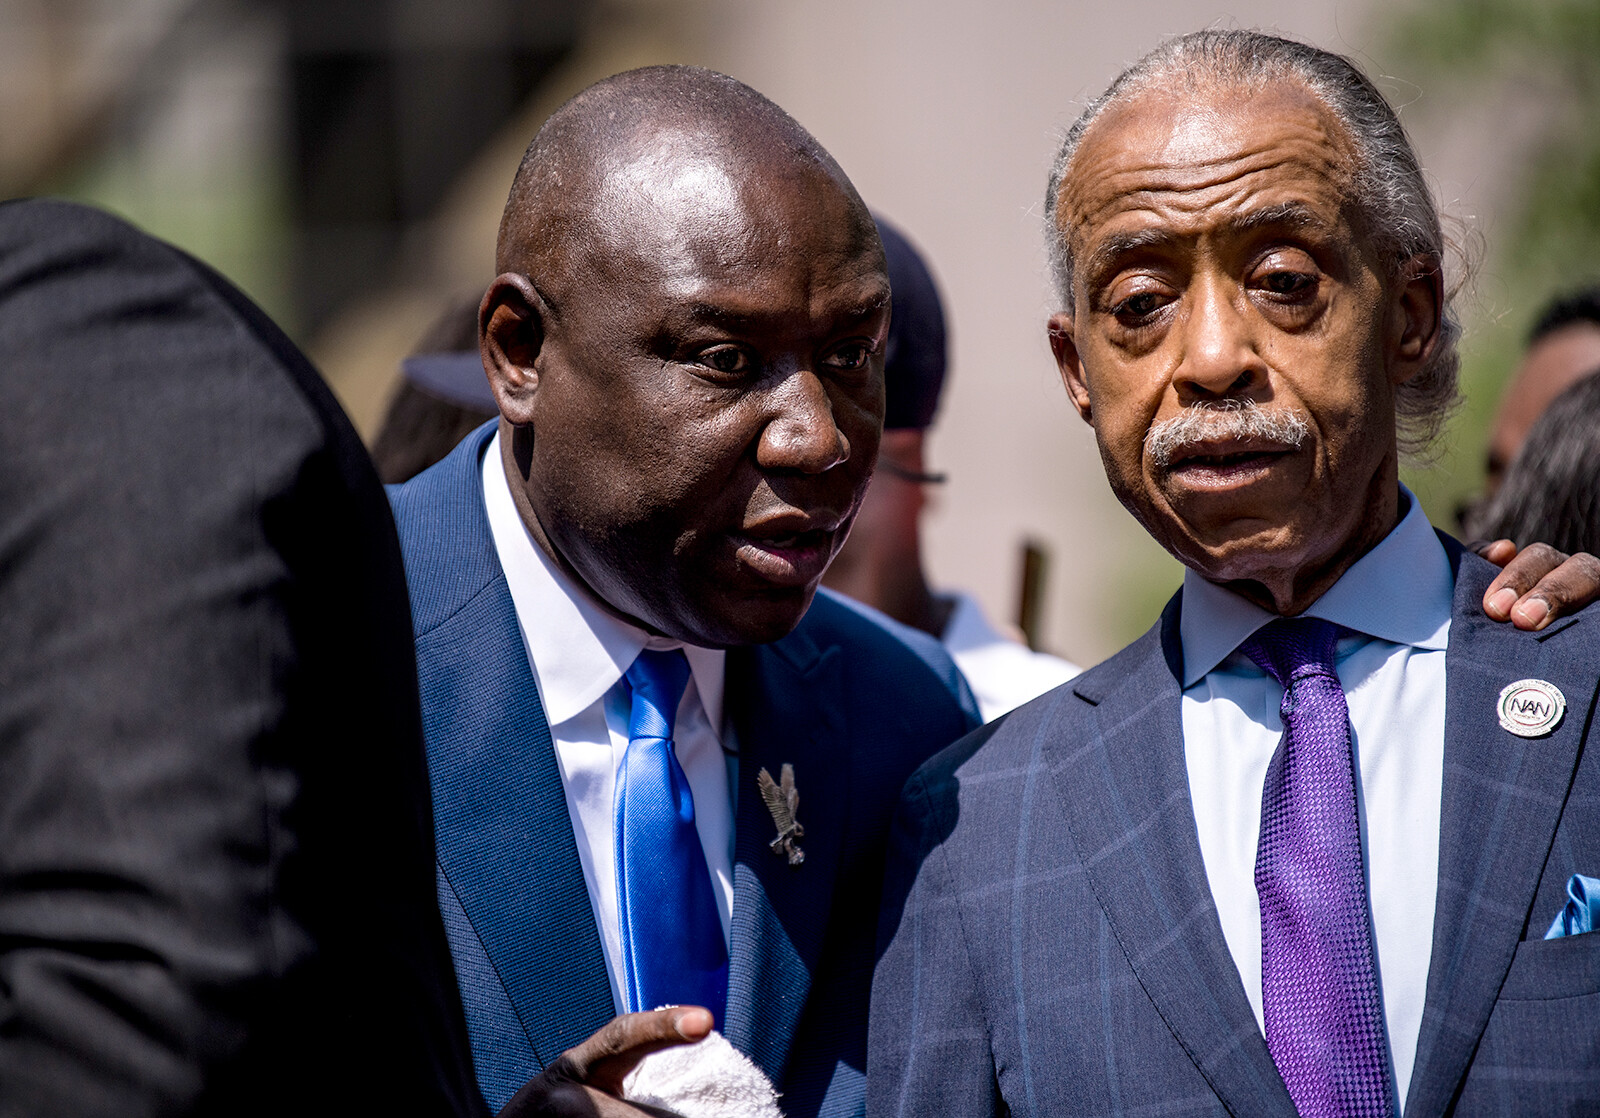 Why Al Sharpton and Ben Crump are taking up the case of a White teen killed by police